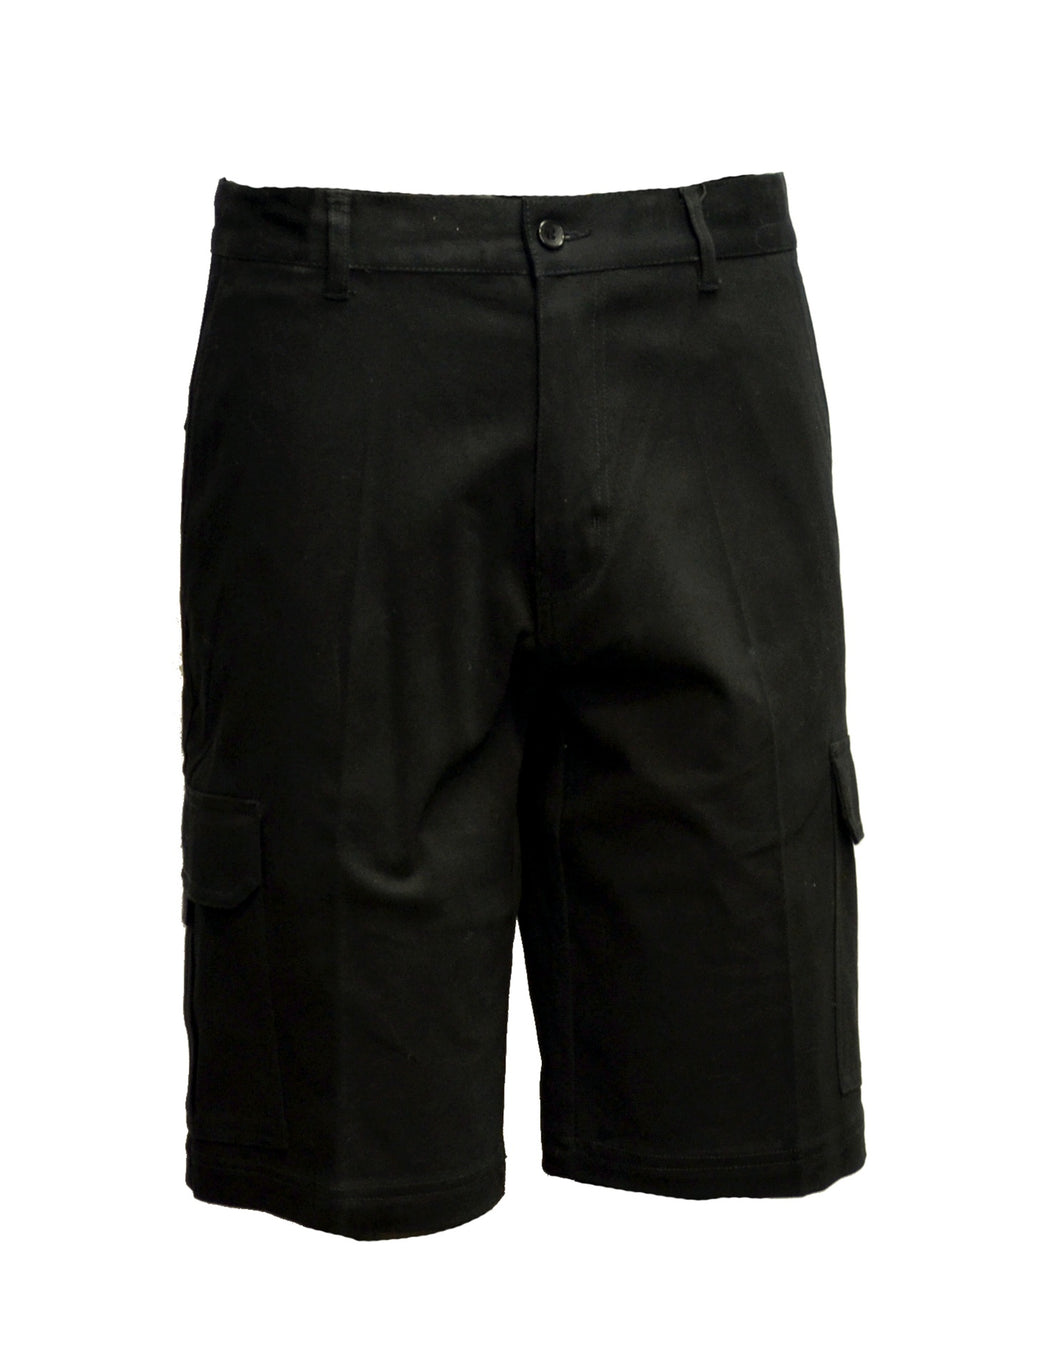 Scala Milano | TCS-006 | Cargo Short | Black